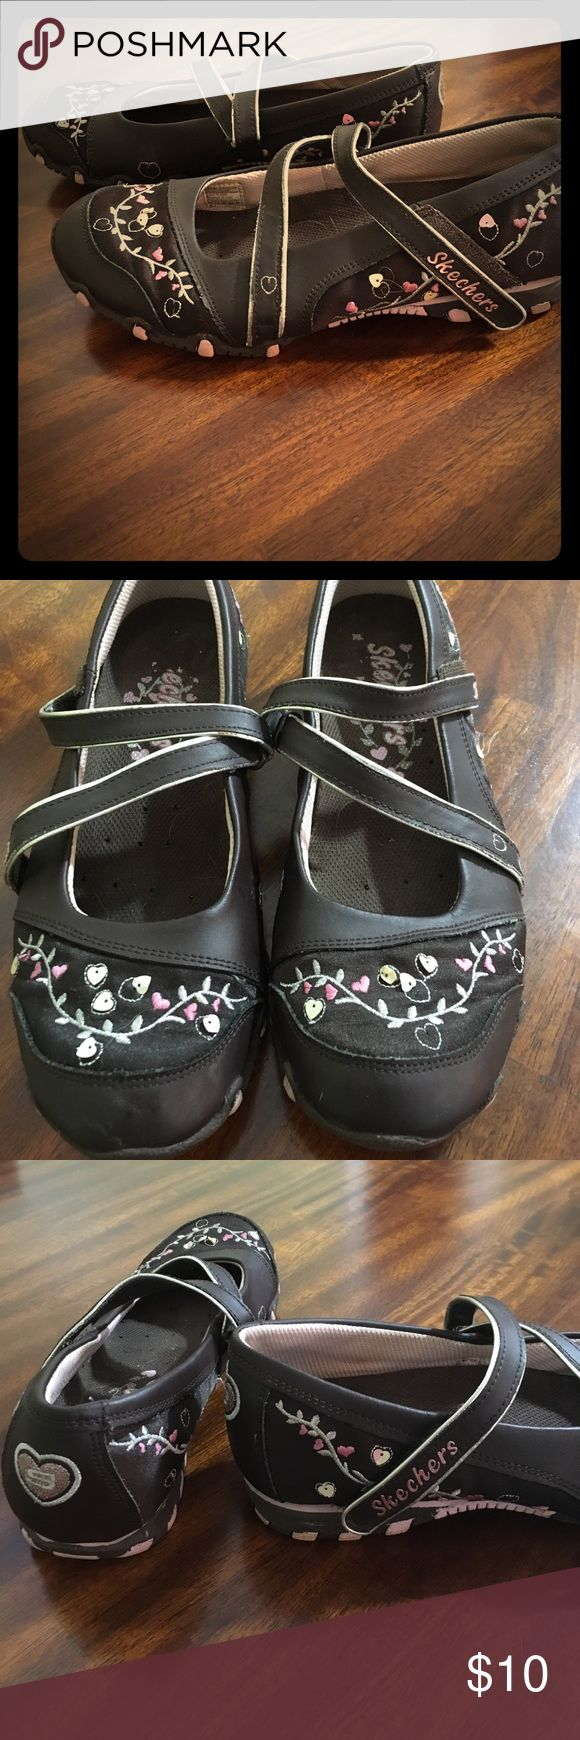 Girls Skechers Brown Floral Shoes EUC girls Skechers shoes, size 5. Pink and silver floral embroidery and sequins with a Velcro closure and a sneaker bottom for a pretty shoe that's safe for running and playing in. Skechers Shoes